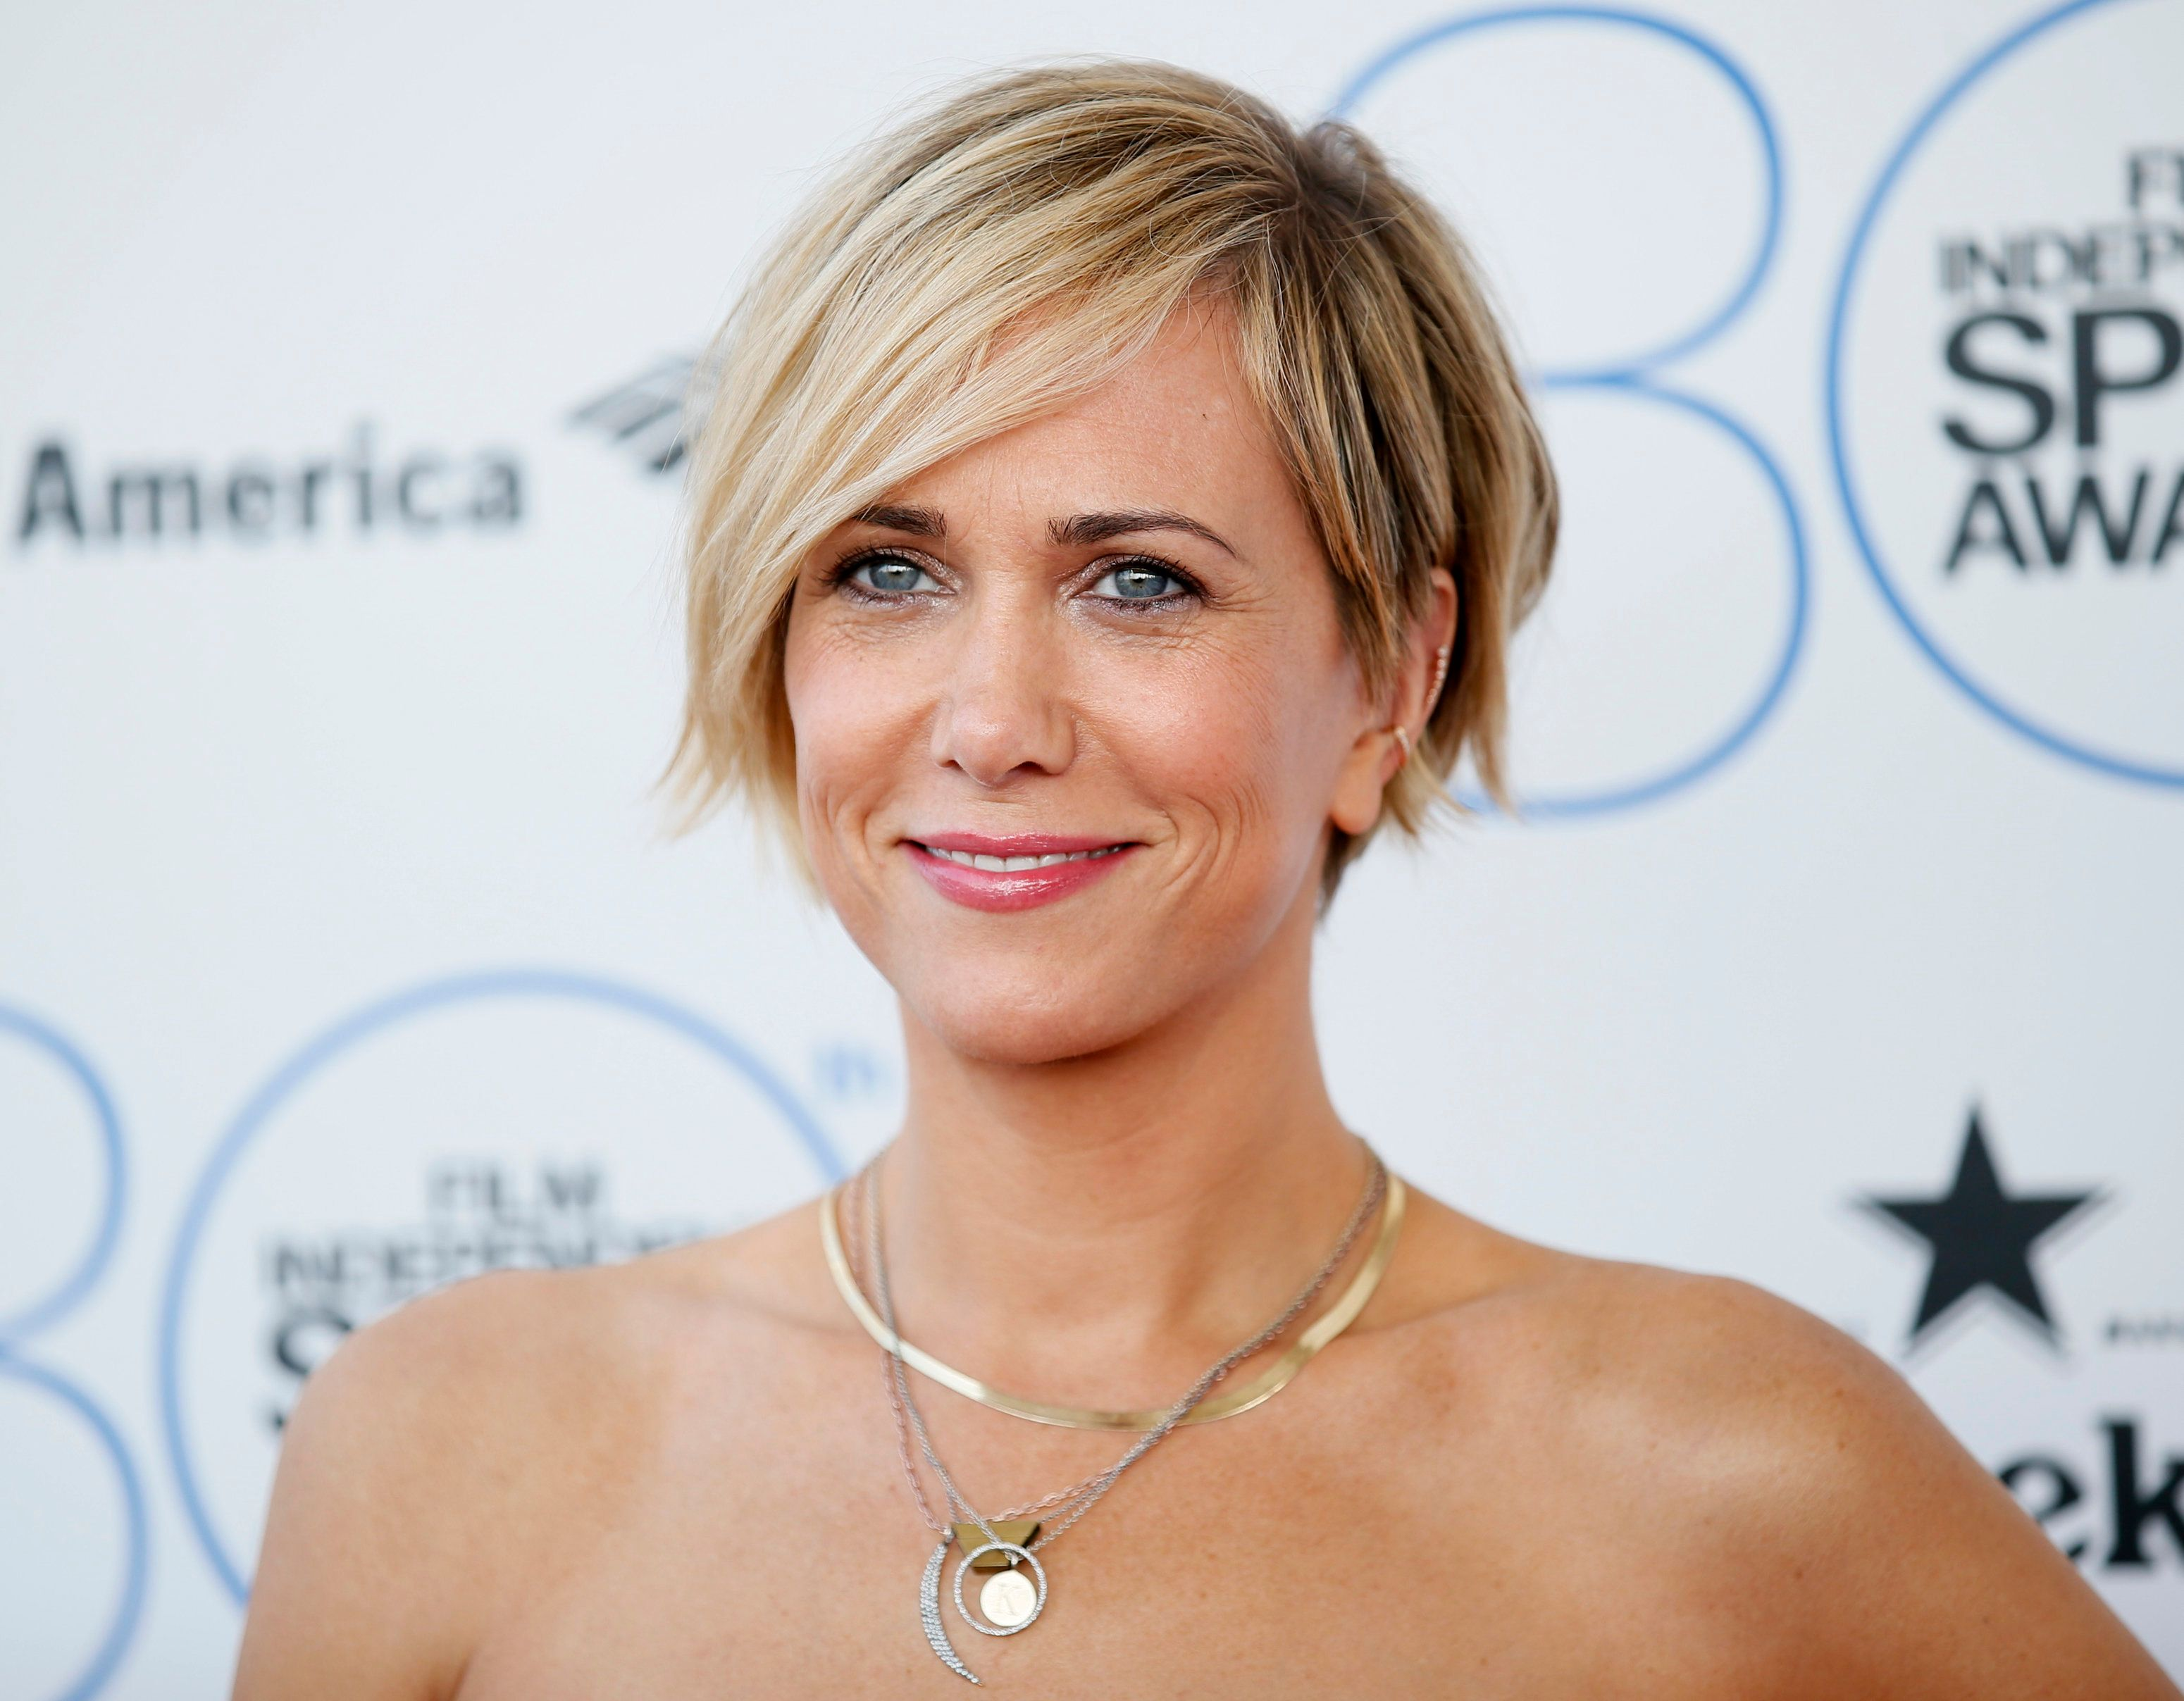 Actress Kristen Wiig arrives at the 2015 Film Independent Spirit Awards in Santa Monica, California February 21, 2015.  REUTERS/Danny Moloshok (UNITED STATES  - Tags: ENTERTAINMENT)  (SPIRITAWARDS-ARRIVALS)